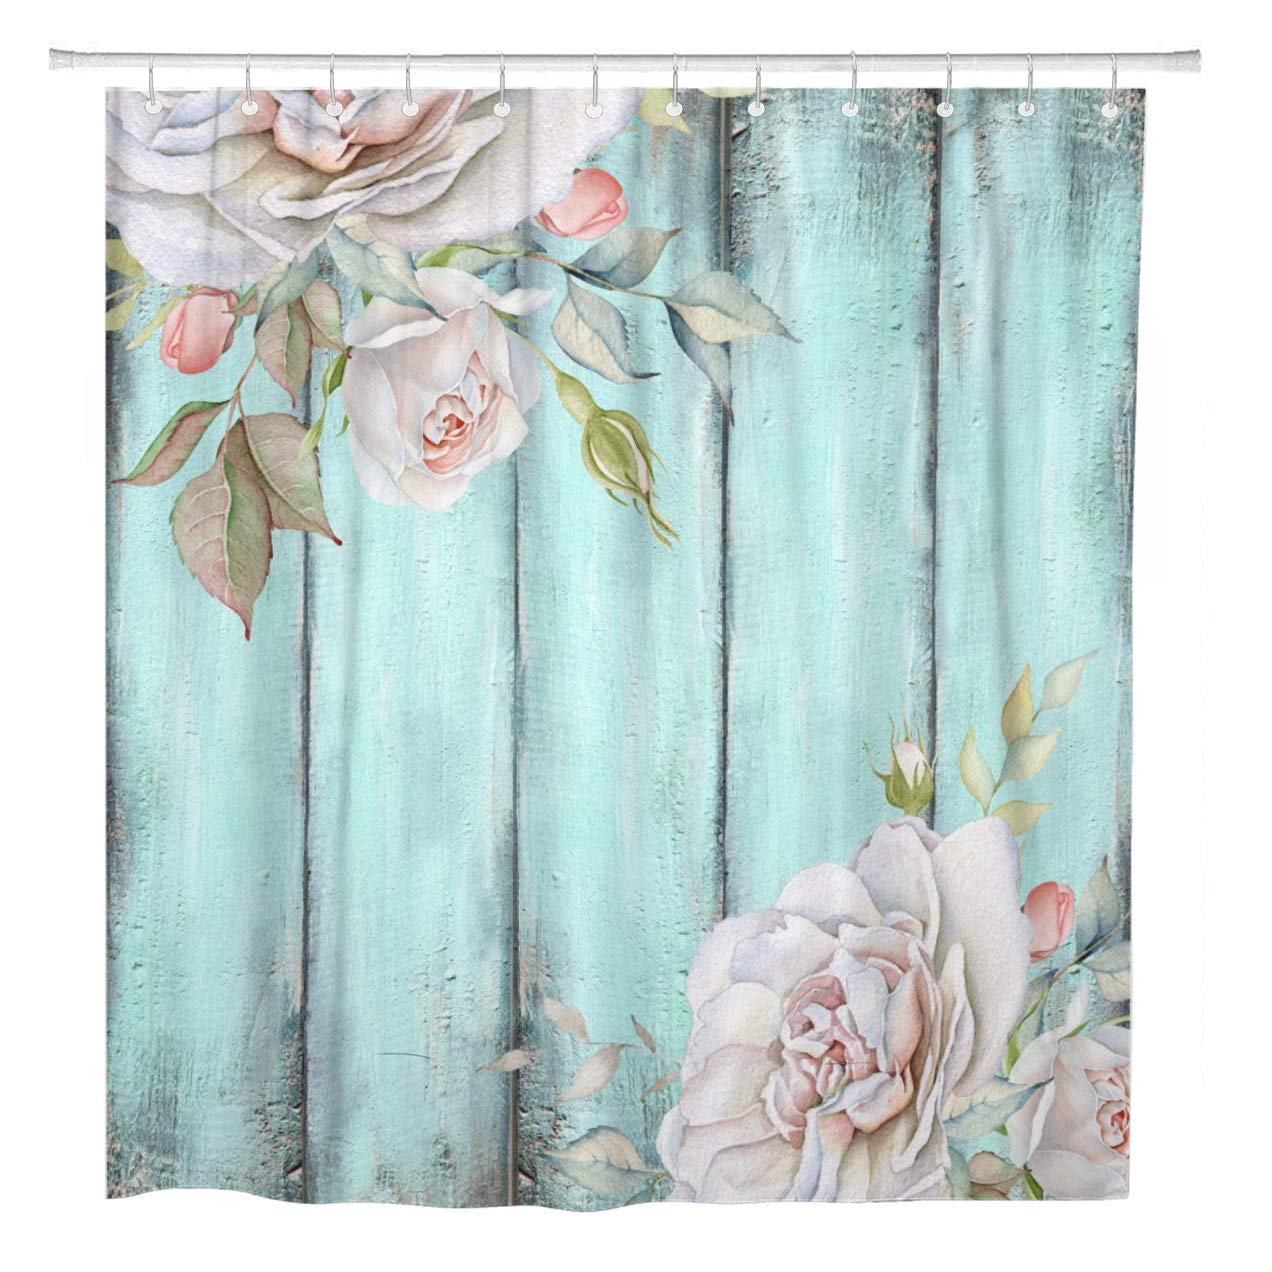 ArtSocket Shower Curtain Teal Rustic Shabby Country Chic Blue Curtains Wood Rose Home Bathroom Decor Polyester Fabric Waterproof 72 x 72 Inches Set with Hooks